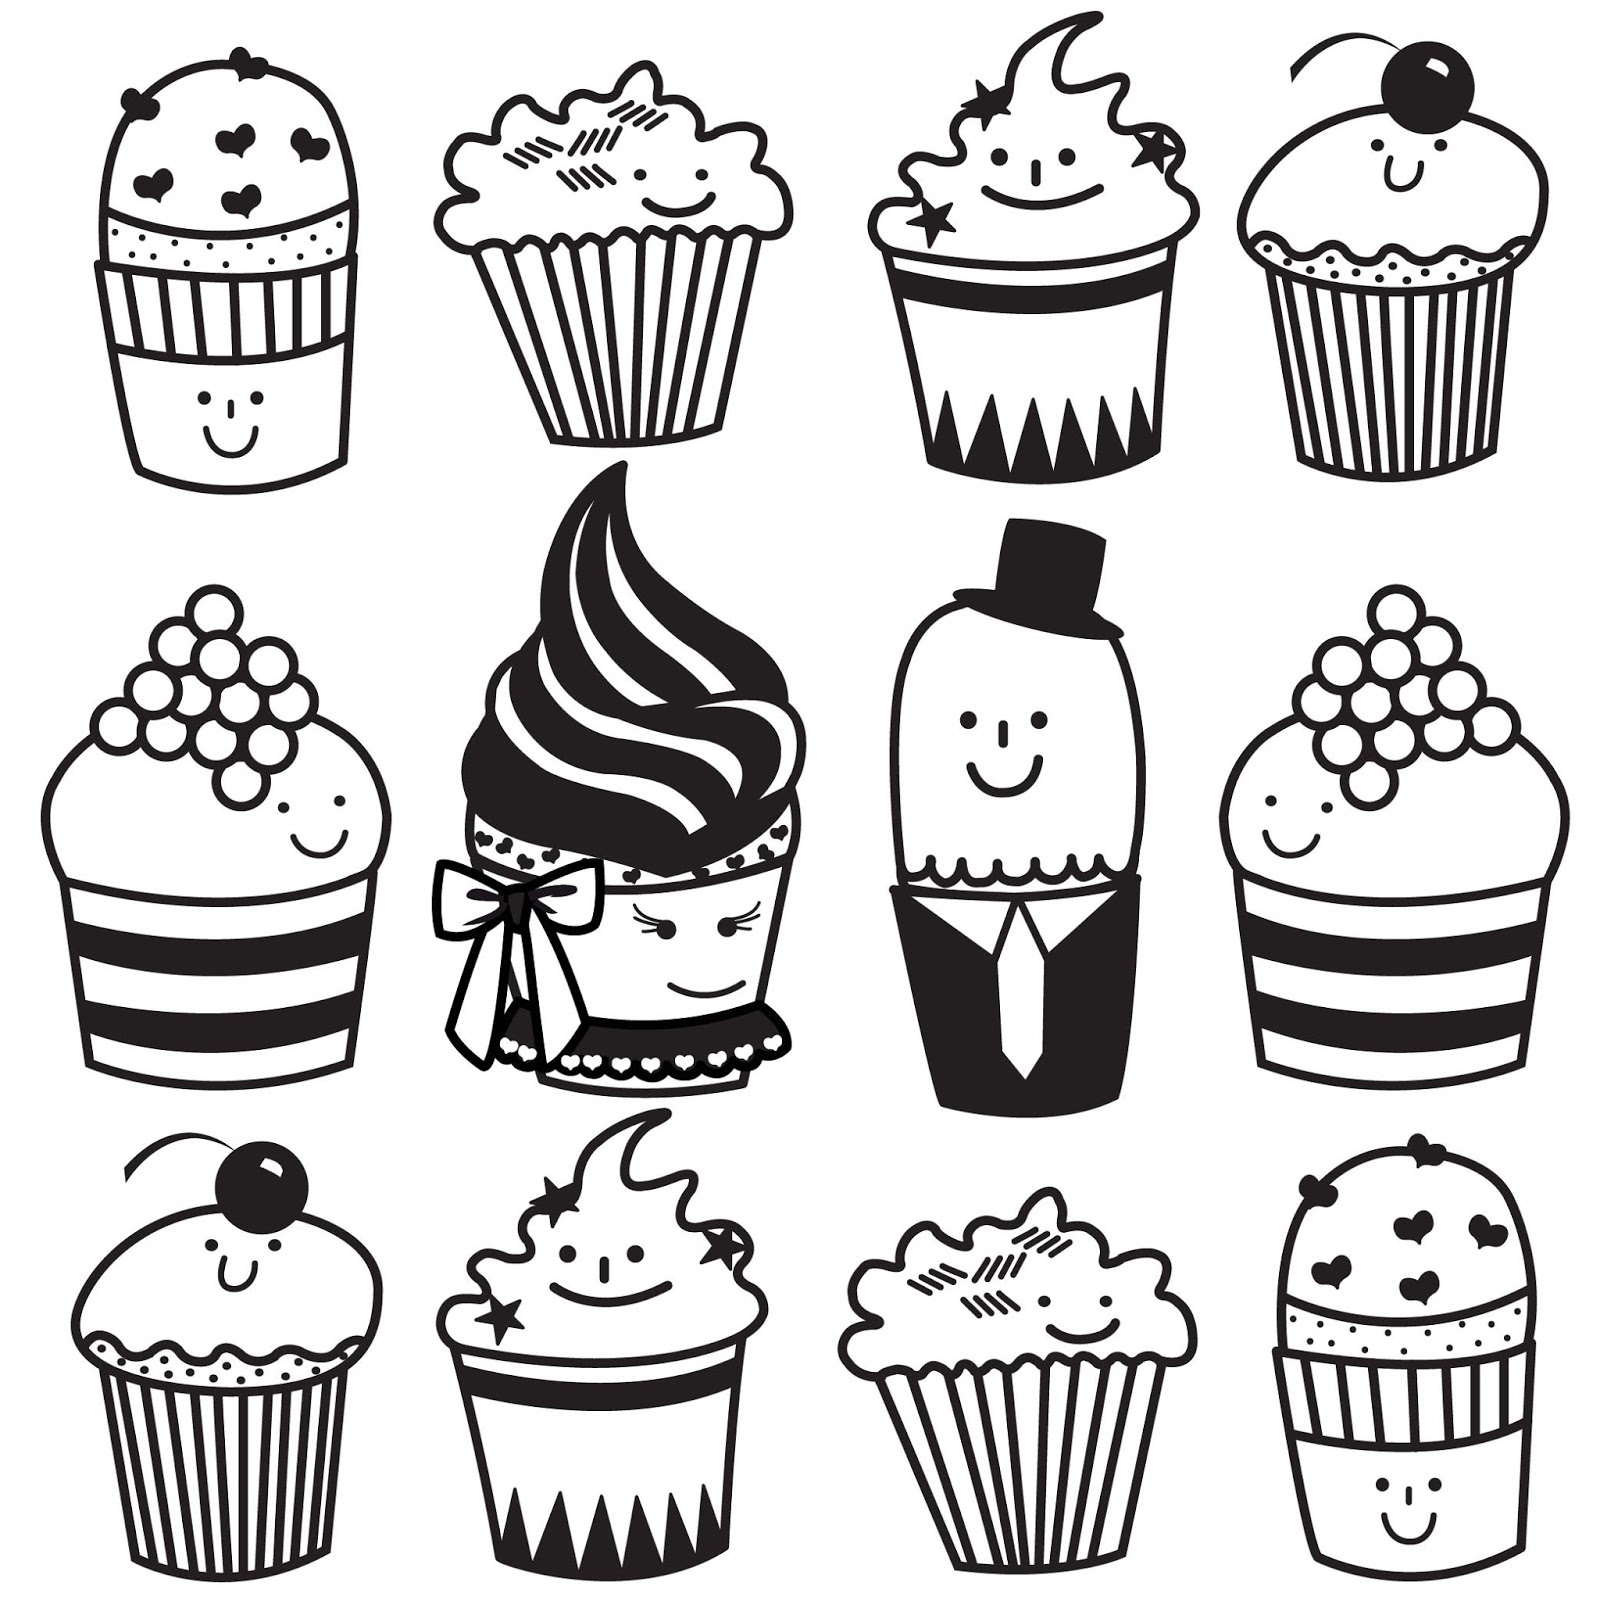 1600x1600 Cute Cake Drawing How To Draw A Cute Birthday Cake